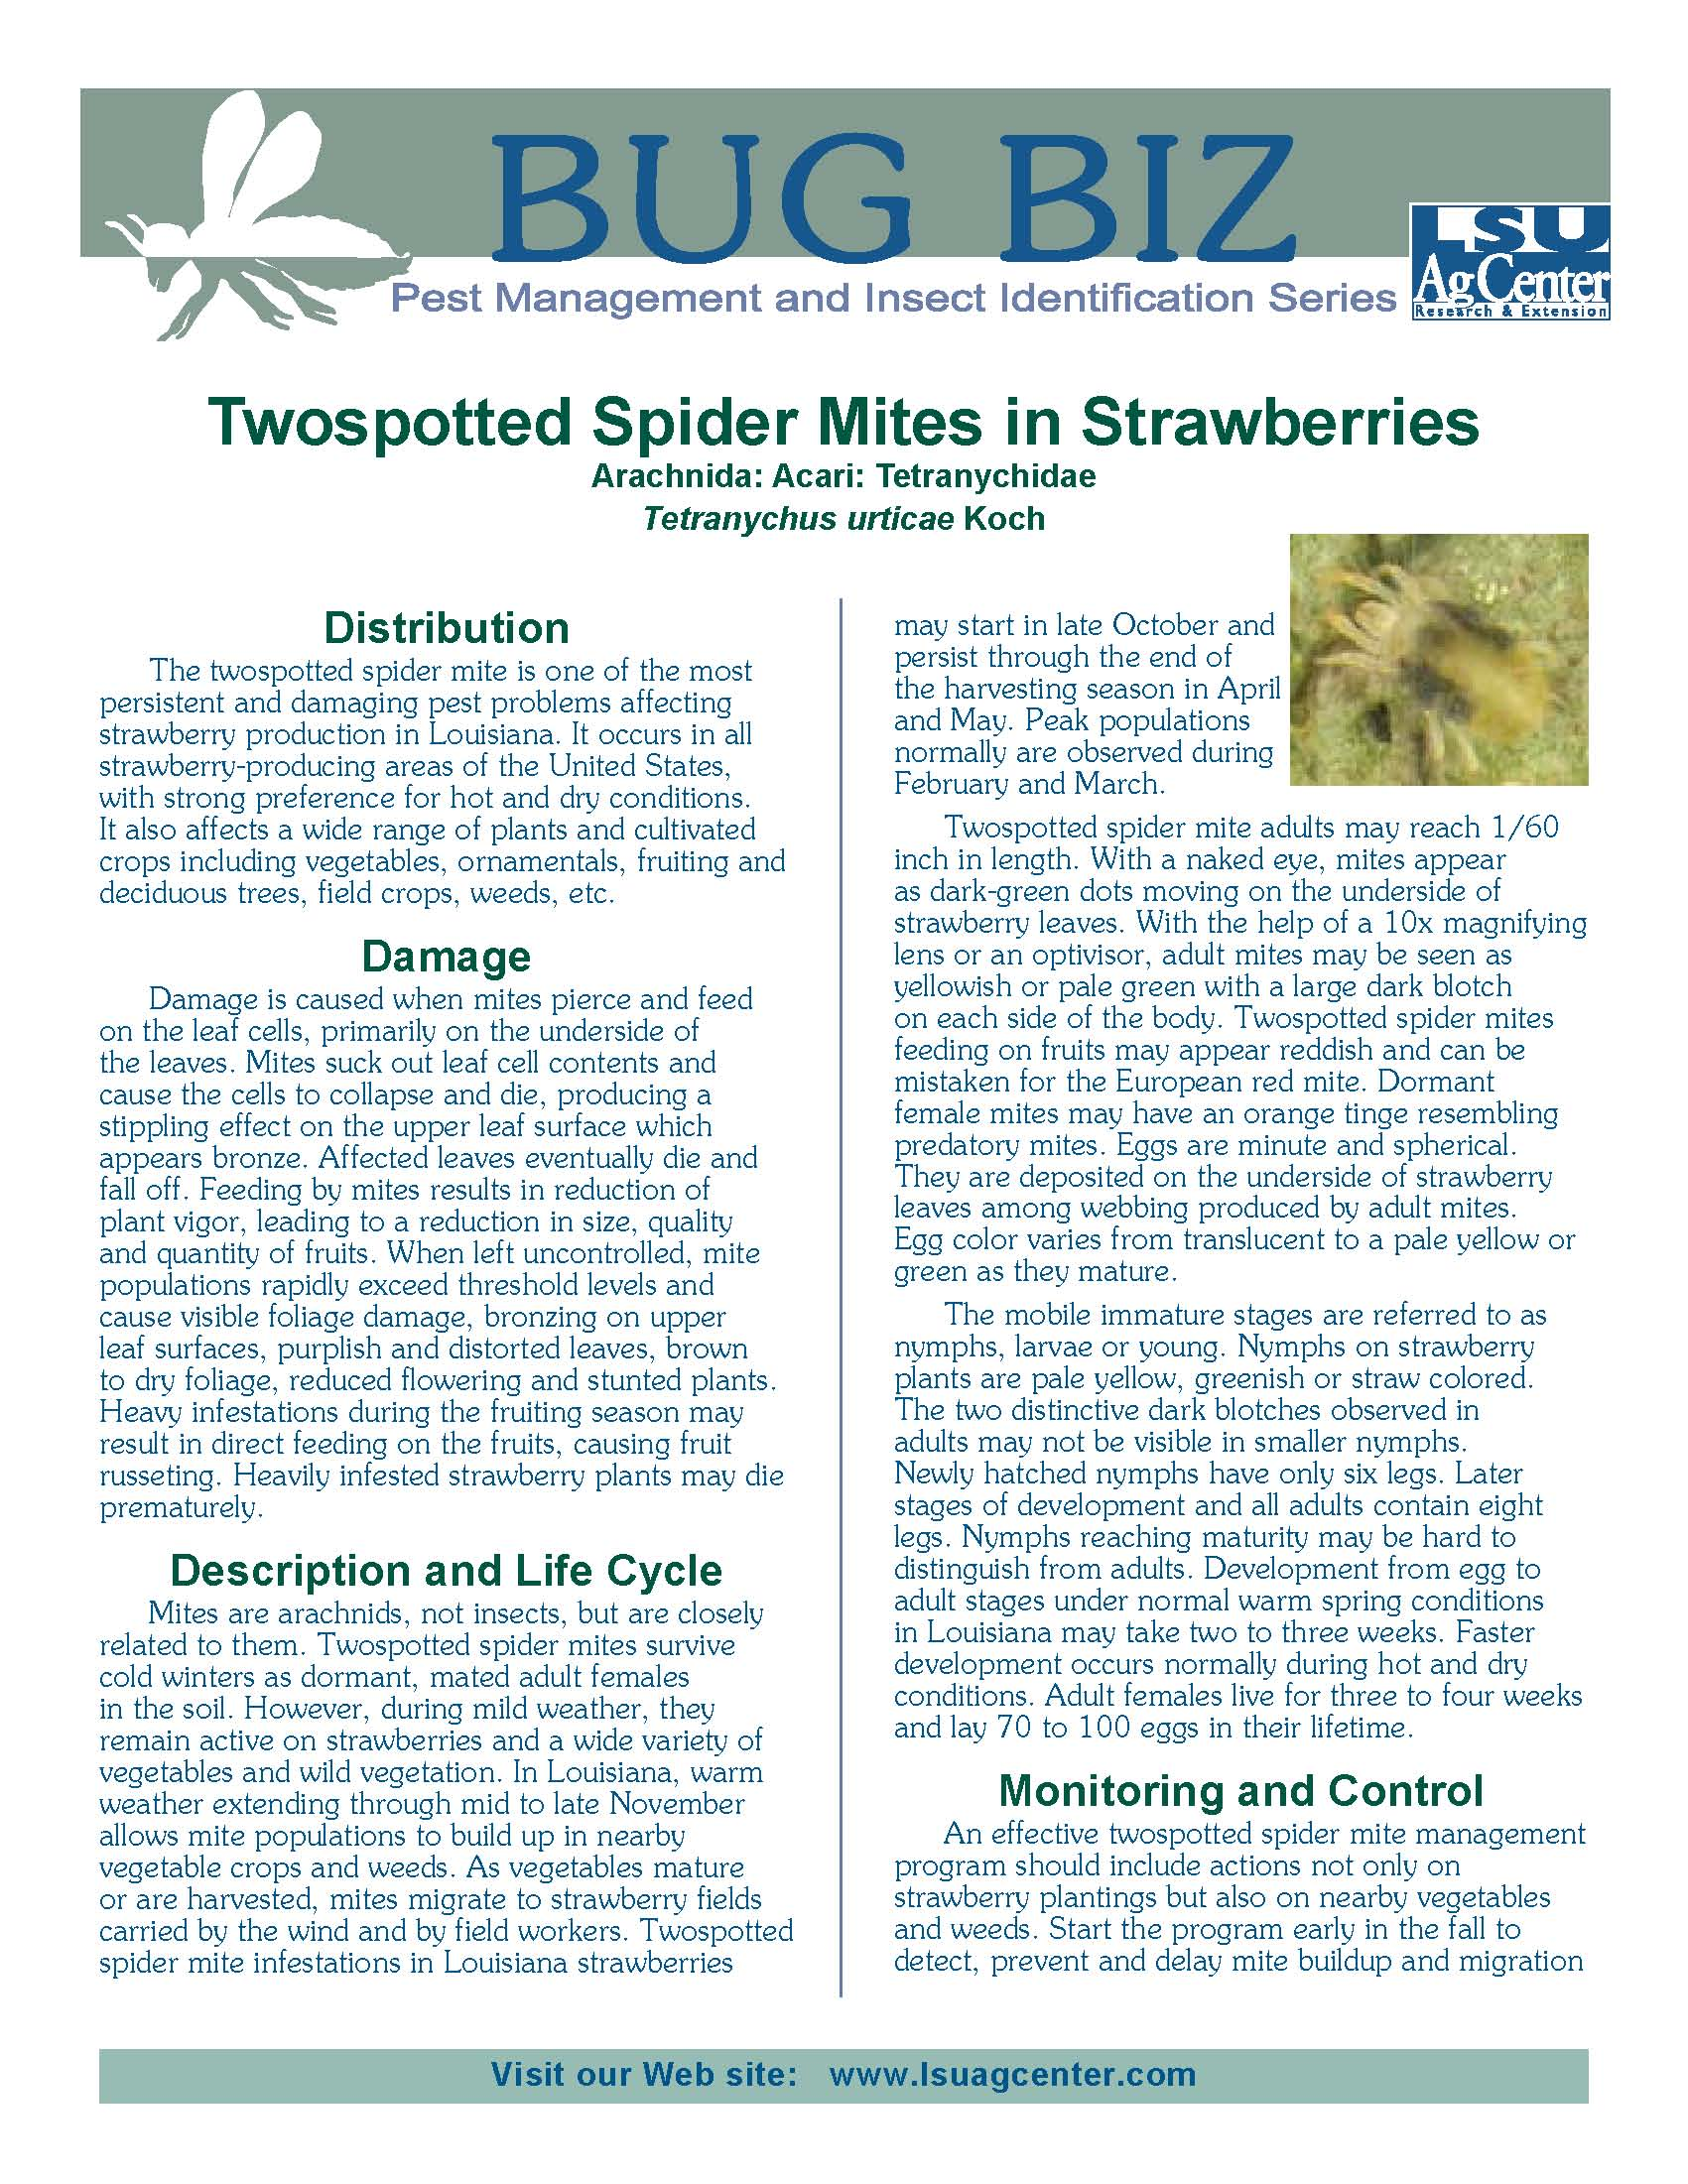 Bug Biz:  Twospotted Spider Mites in Strawberries